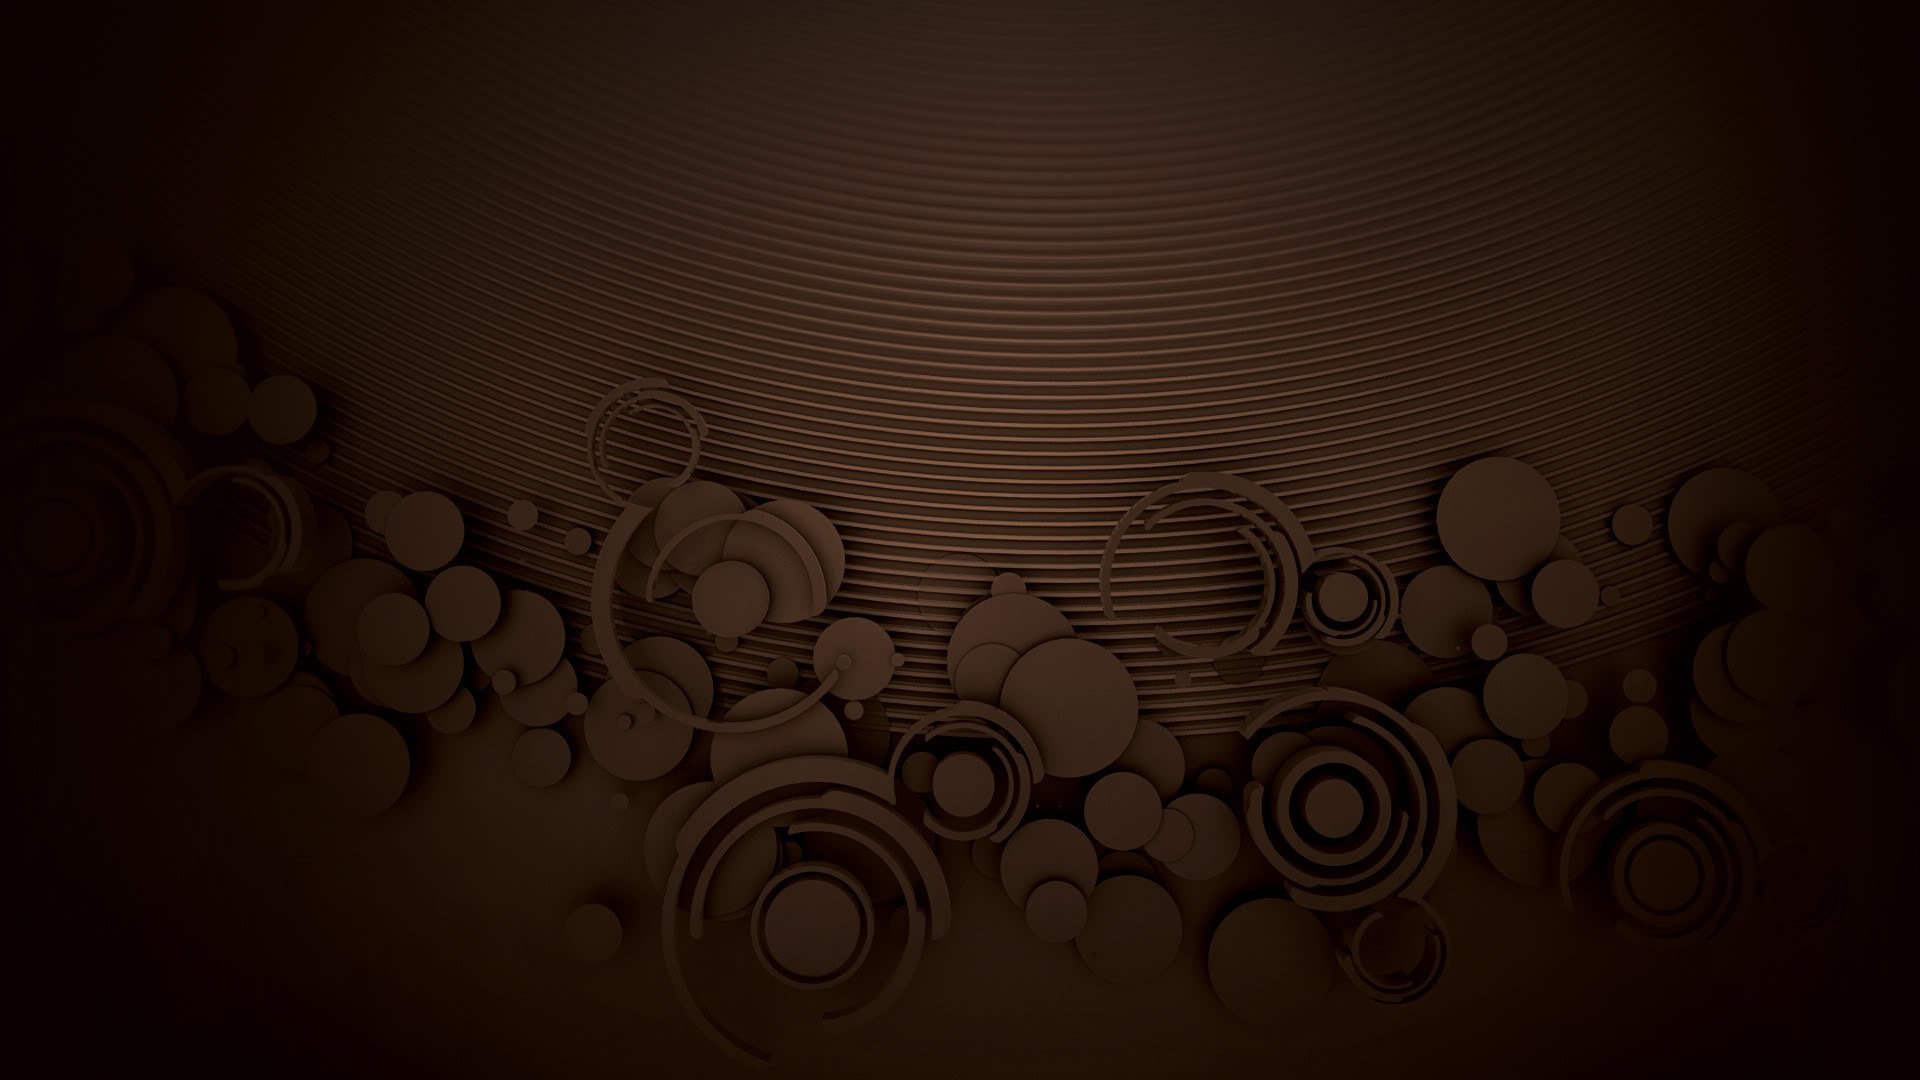 brown wallpaper high resolution is high definition wallpaper you can 1920x1080